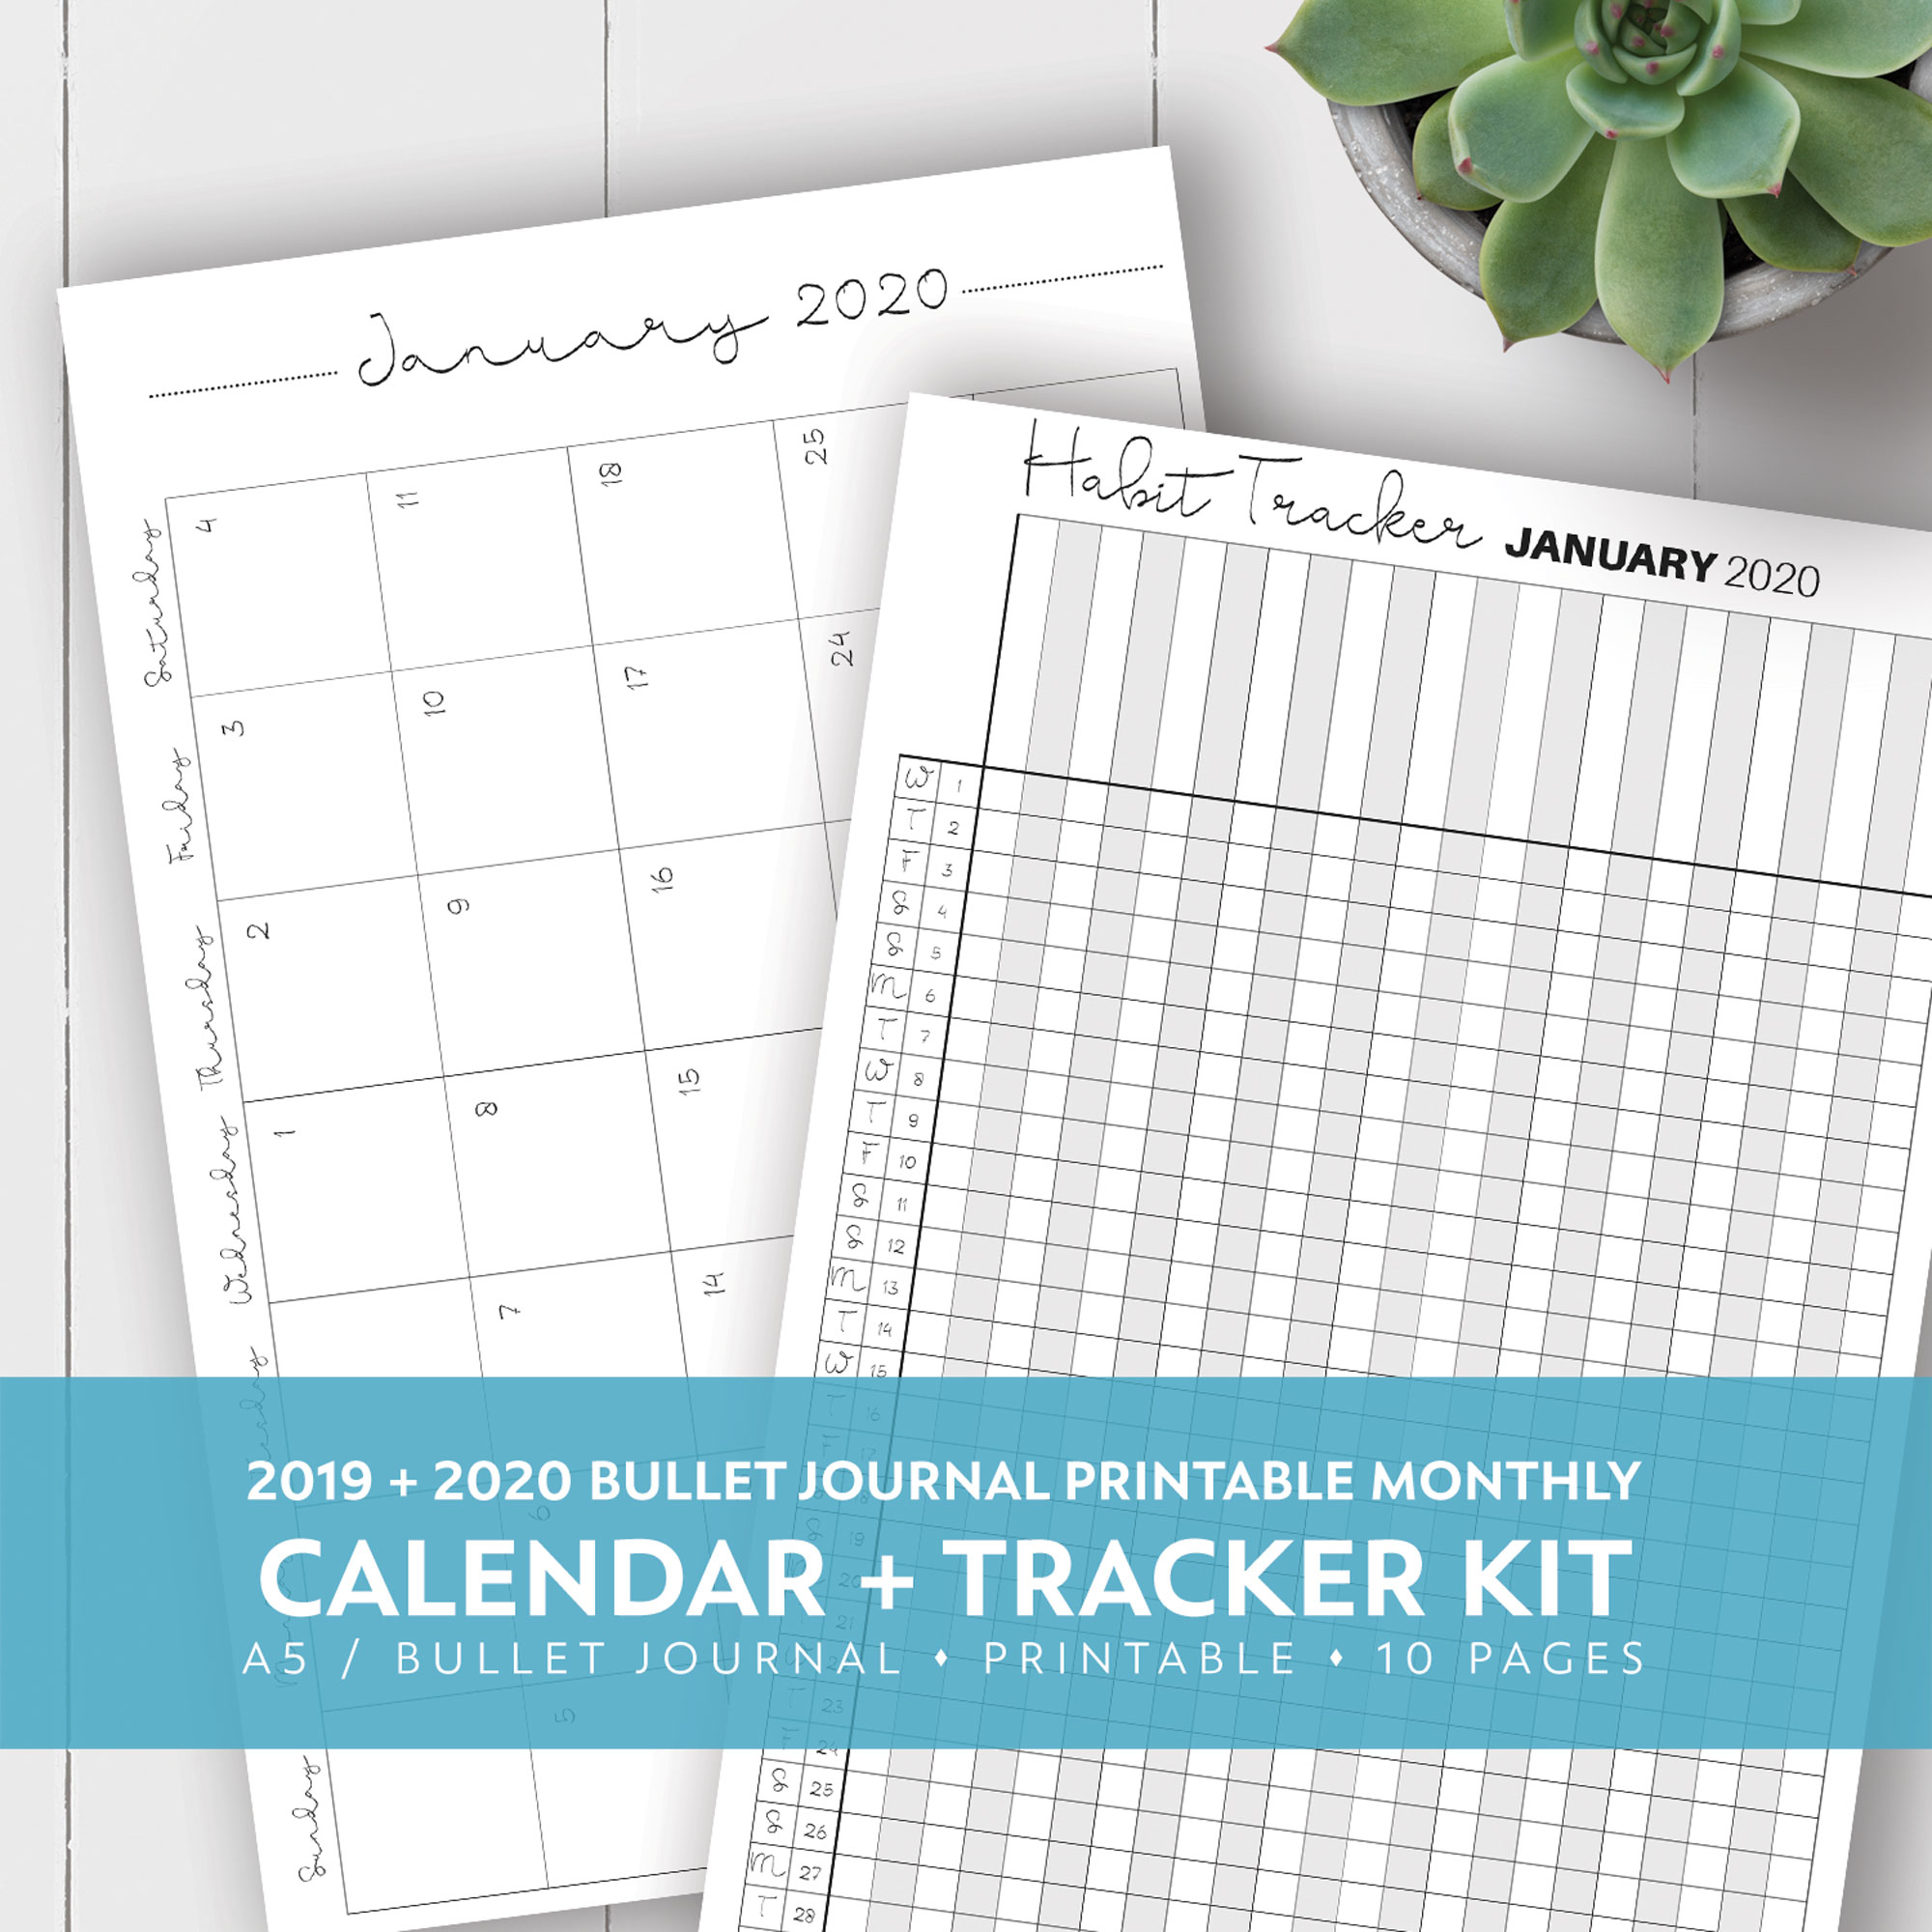 2019 + 2020 Monthly Printable Calendar + Habit Tracker Kit in Free Yearly 5.5 X 8.5 Calendar 2020